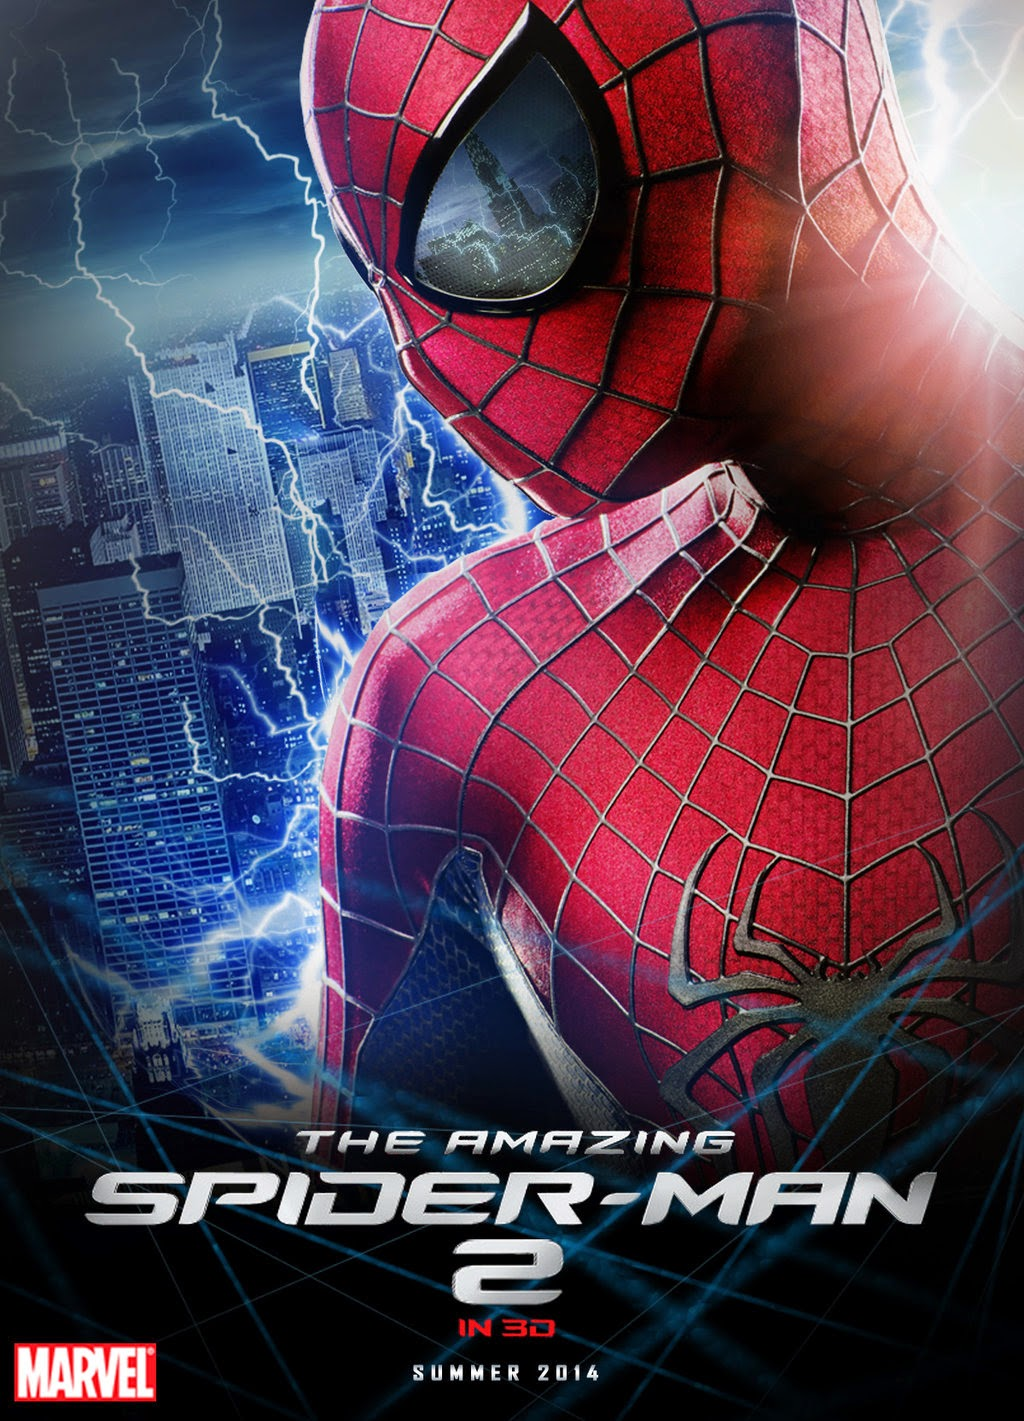 Watch The Amazing Spider-Man 2 Movie2k.al Movie4k